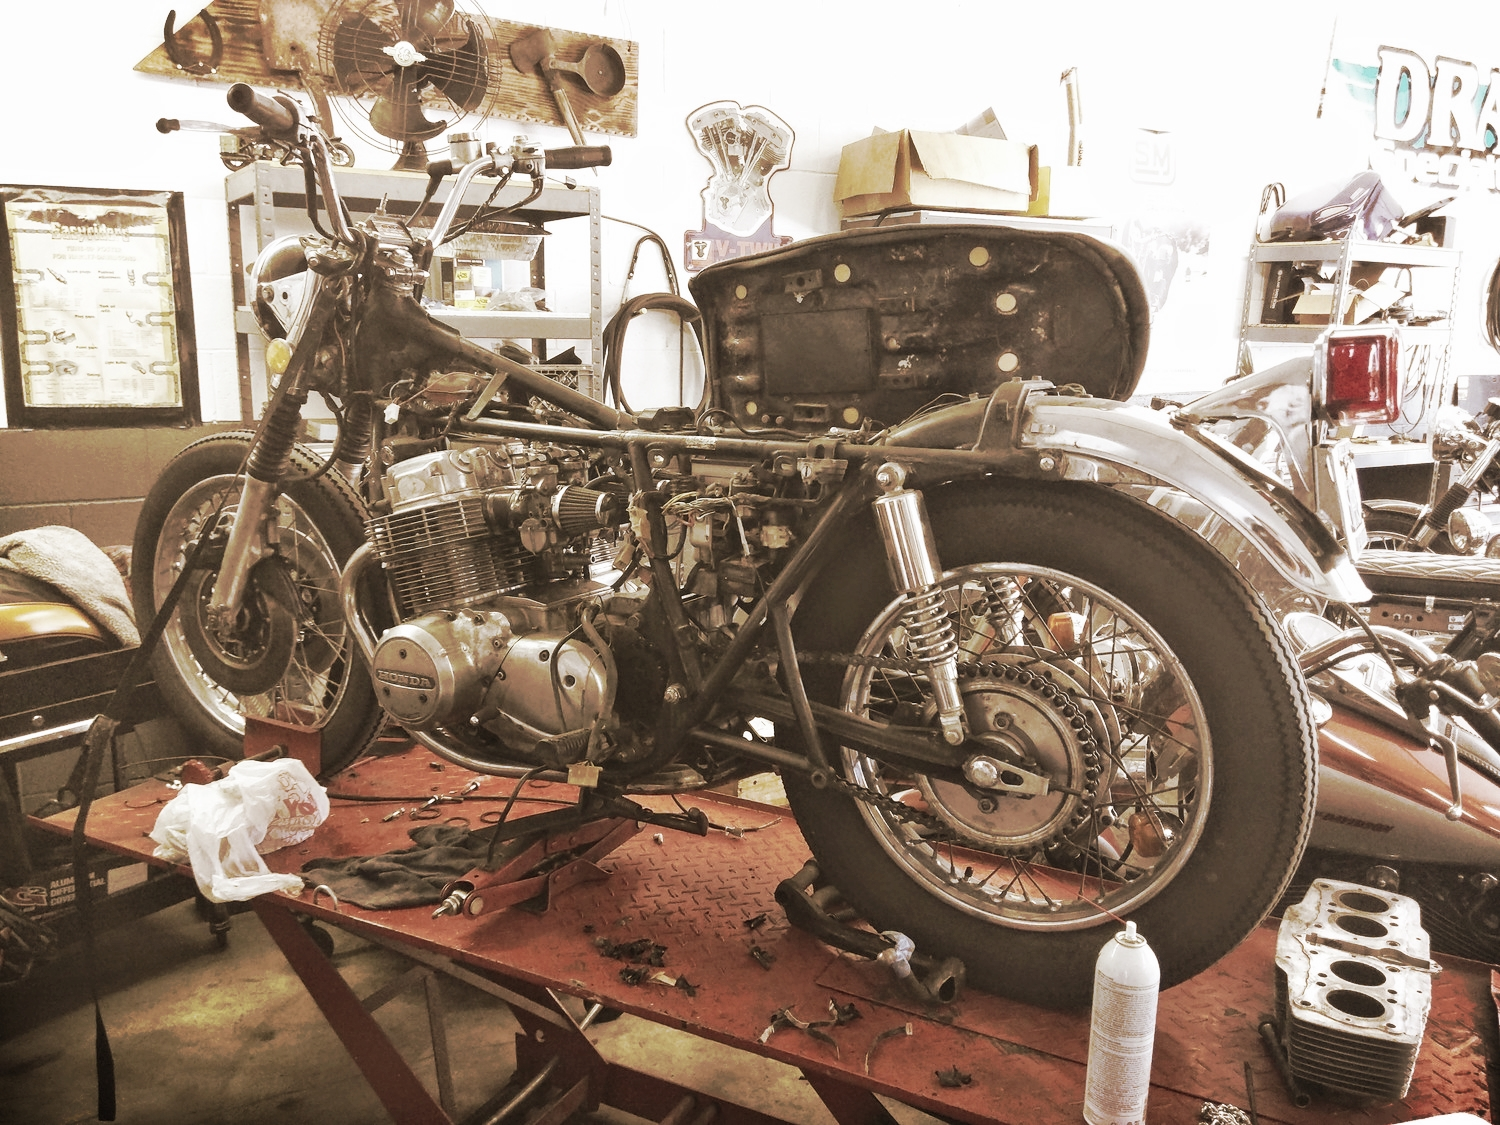 Whatever your need - Burbank Moto Garage has your fix.